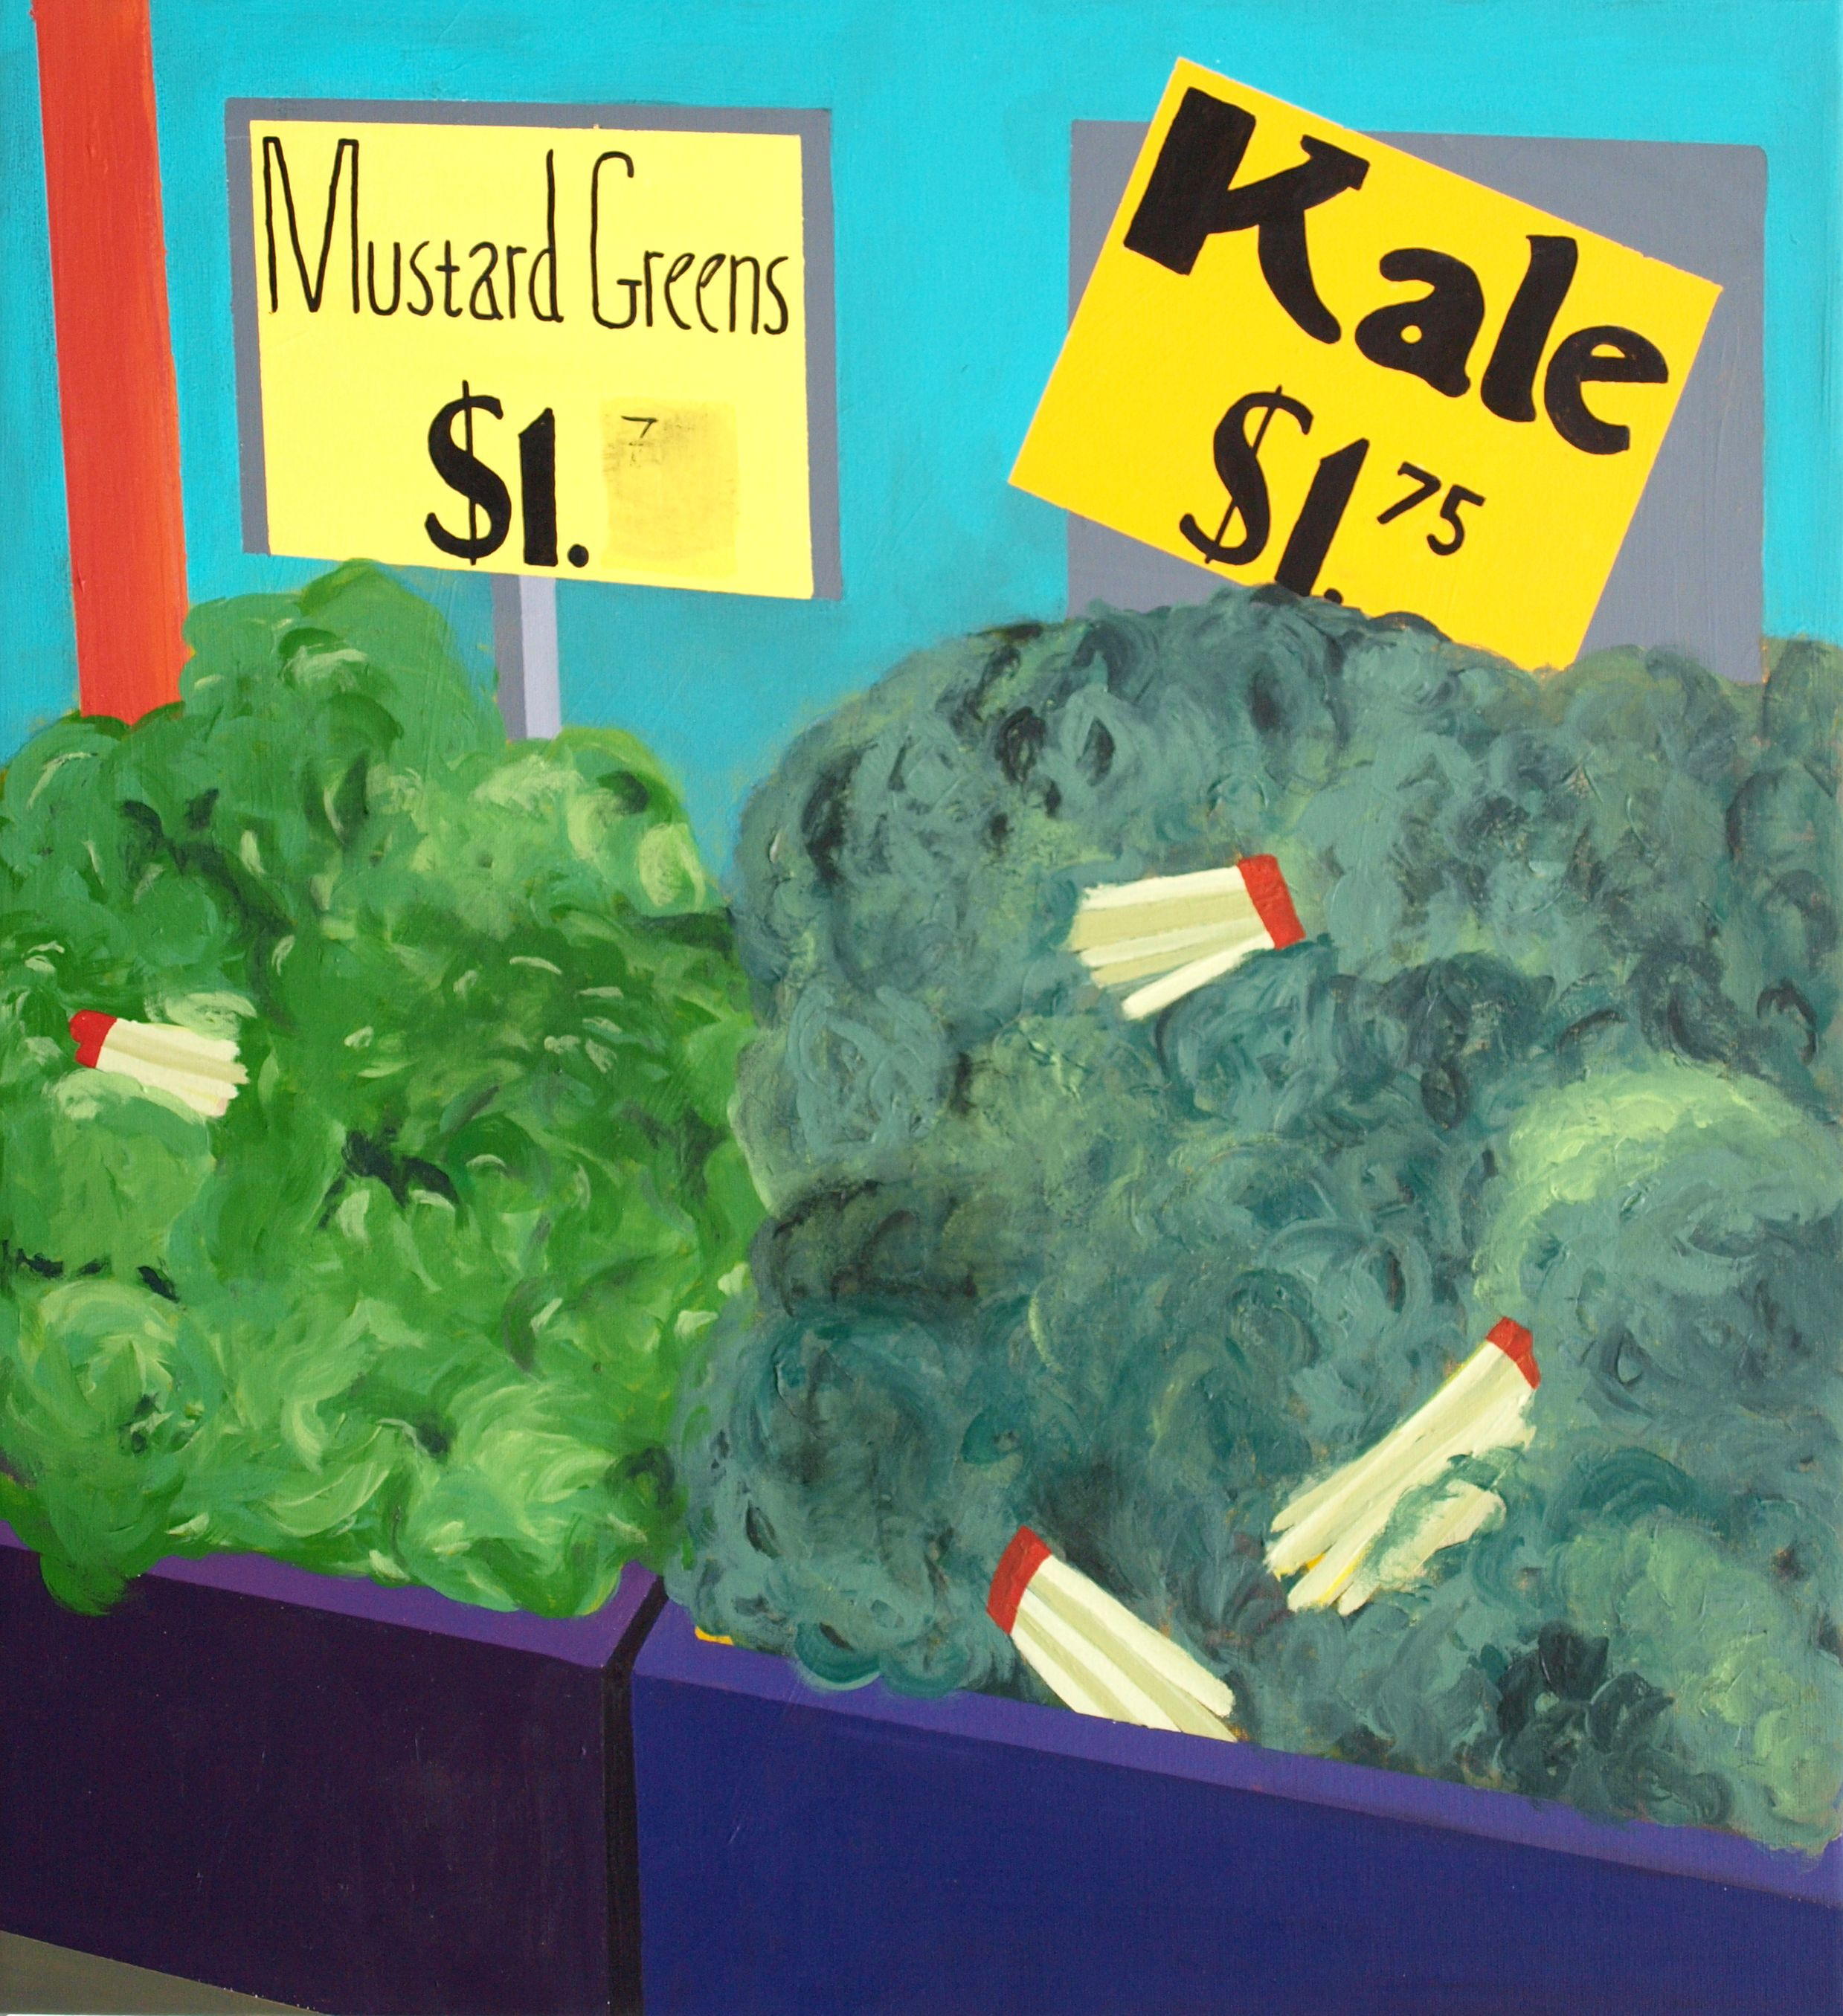 Jonna Pedersen Mustard Green and Kale @ Union Square Green Market 60 x 54 cm